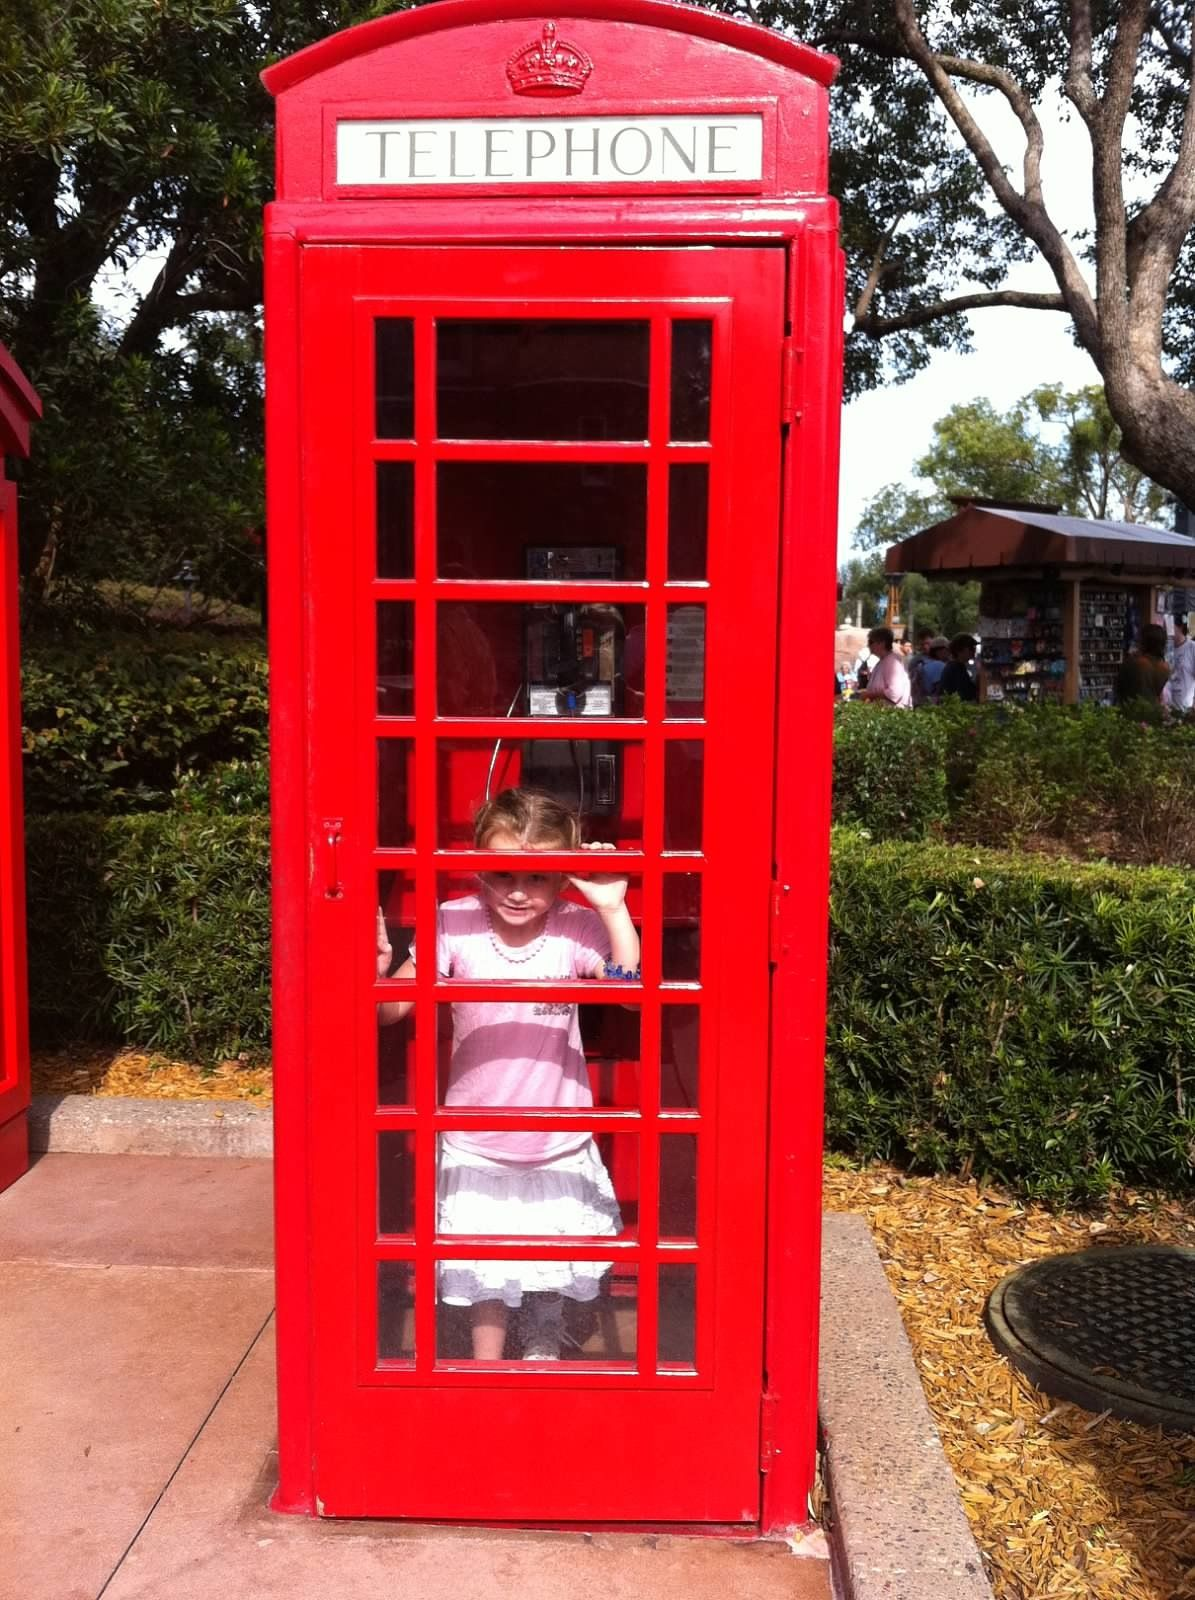 Phone booth - a foreign concept!